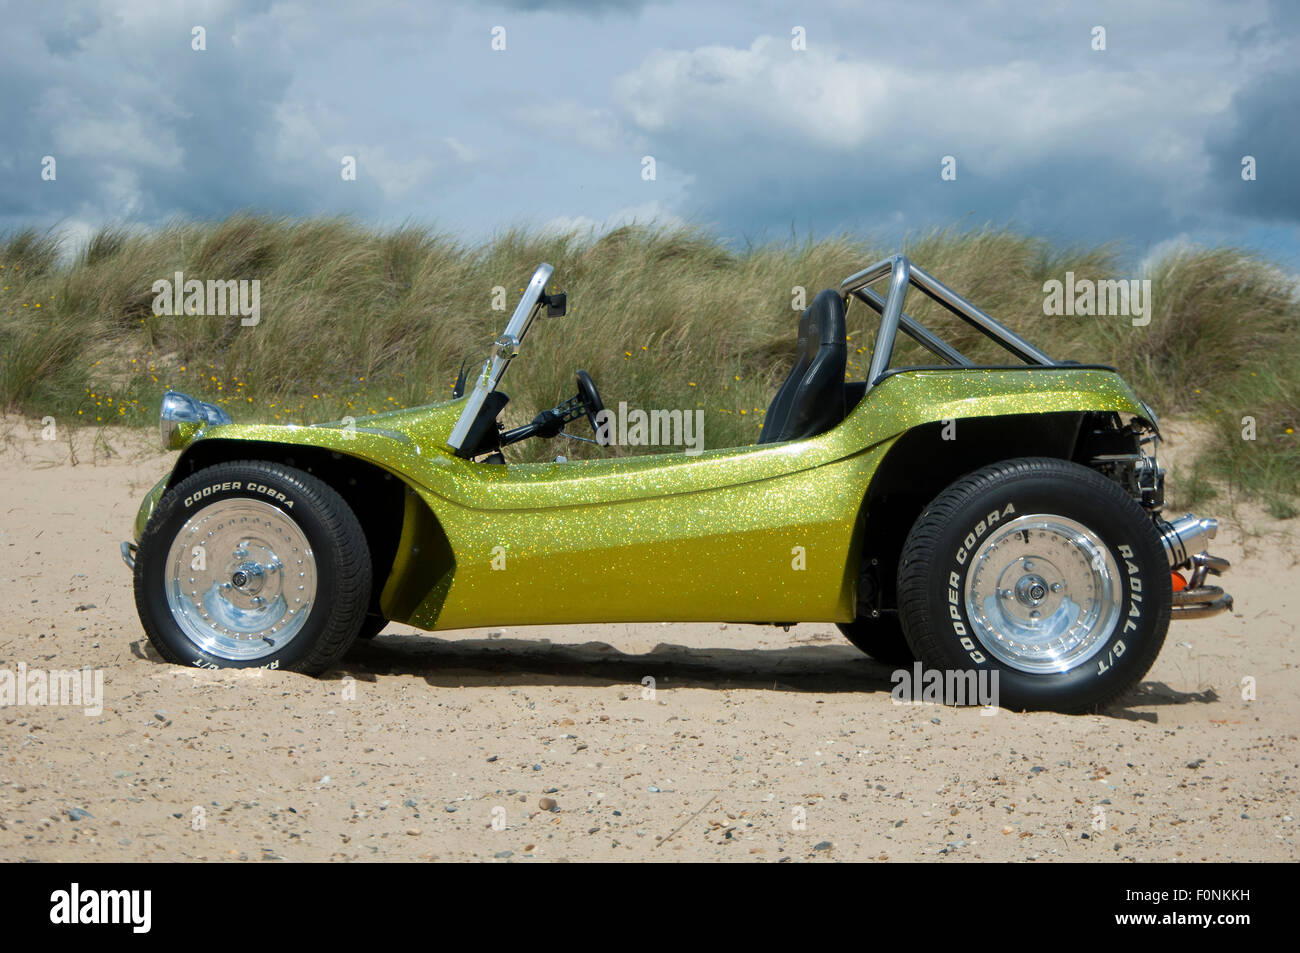 beach buggy on a sandy beach vw beetle based dune buggy. Black Bedroom Furniture Sets. Home Design Ideas